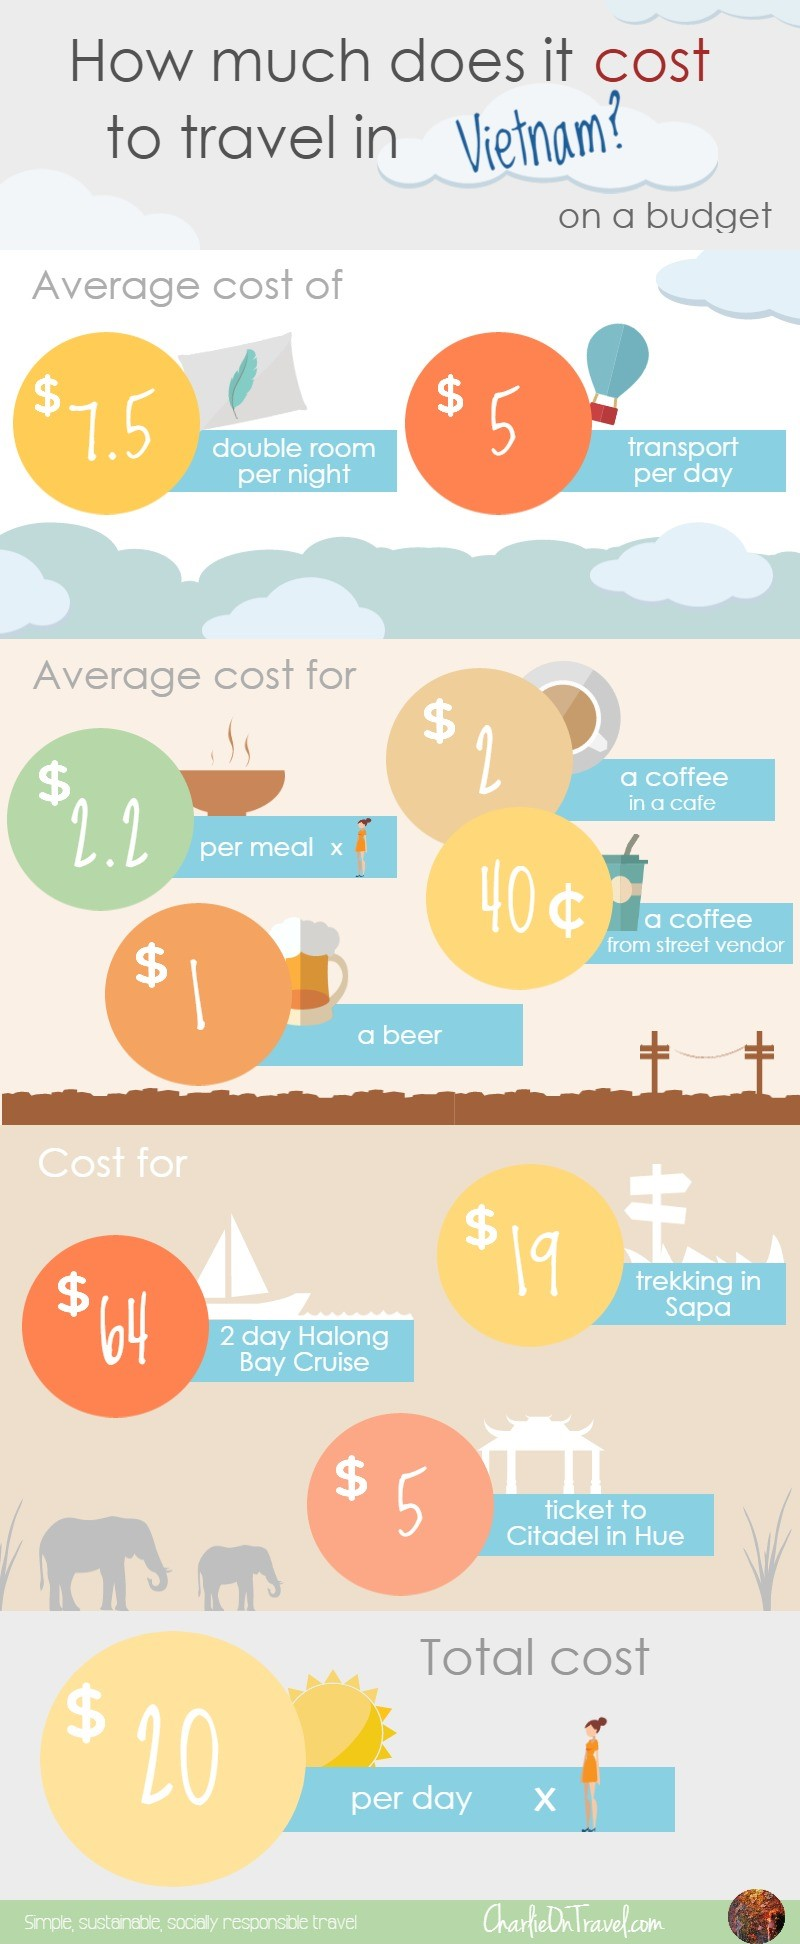 How Much Does it Cost to Travel Vietnam  Charlie on Travel